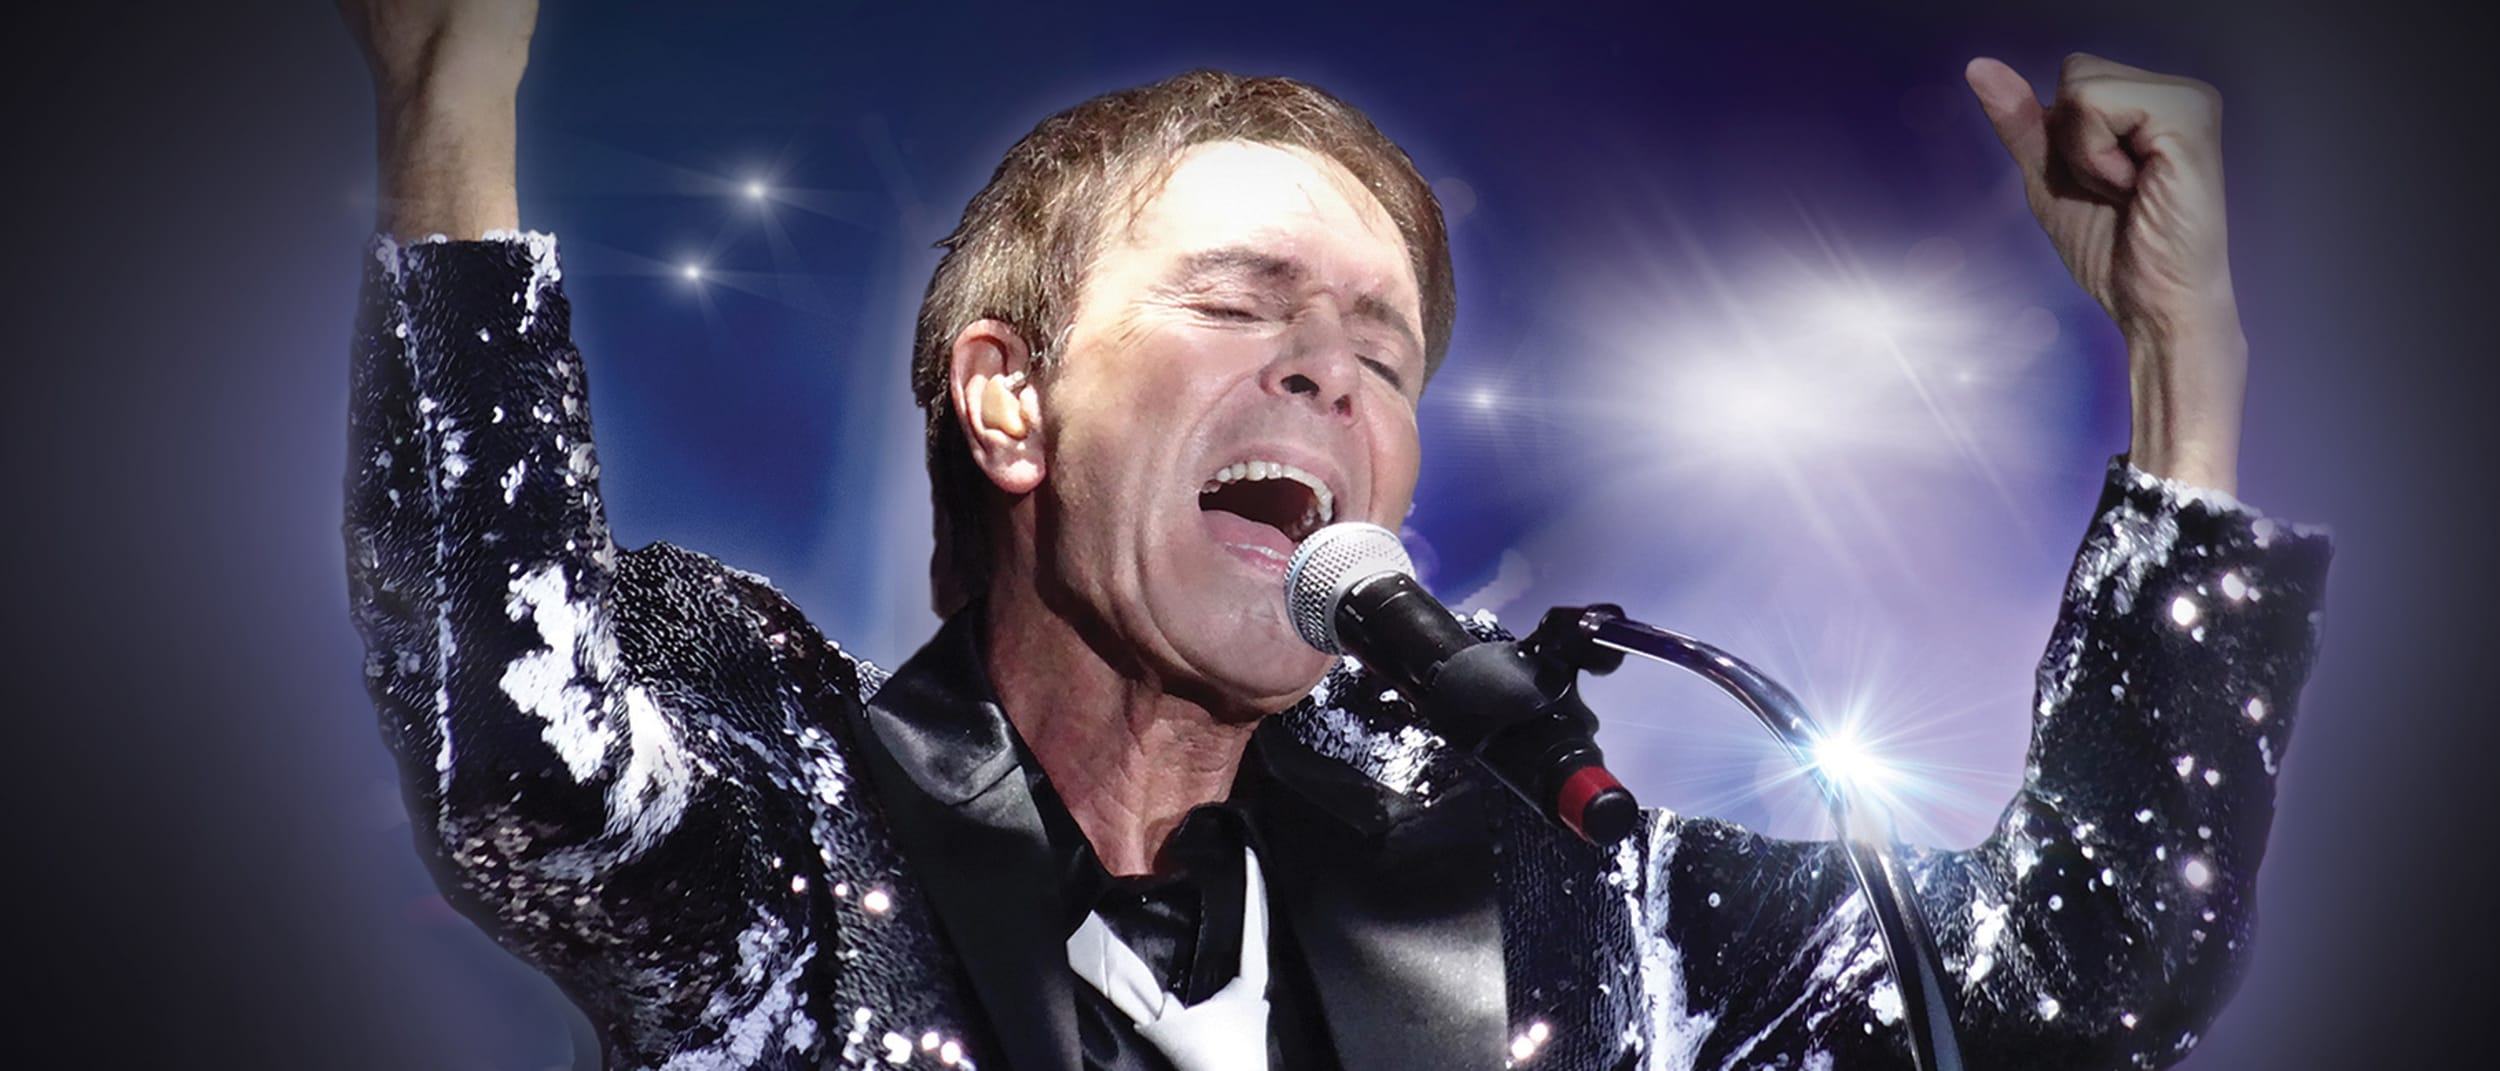 Legendary Cliff Richard live on the big screen